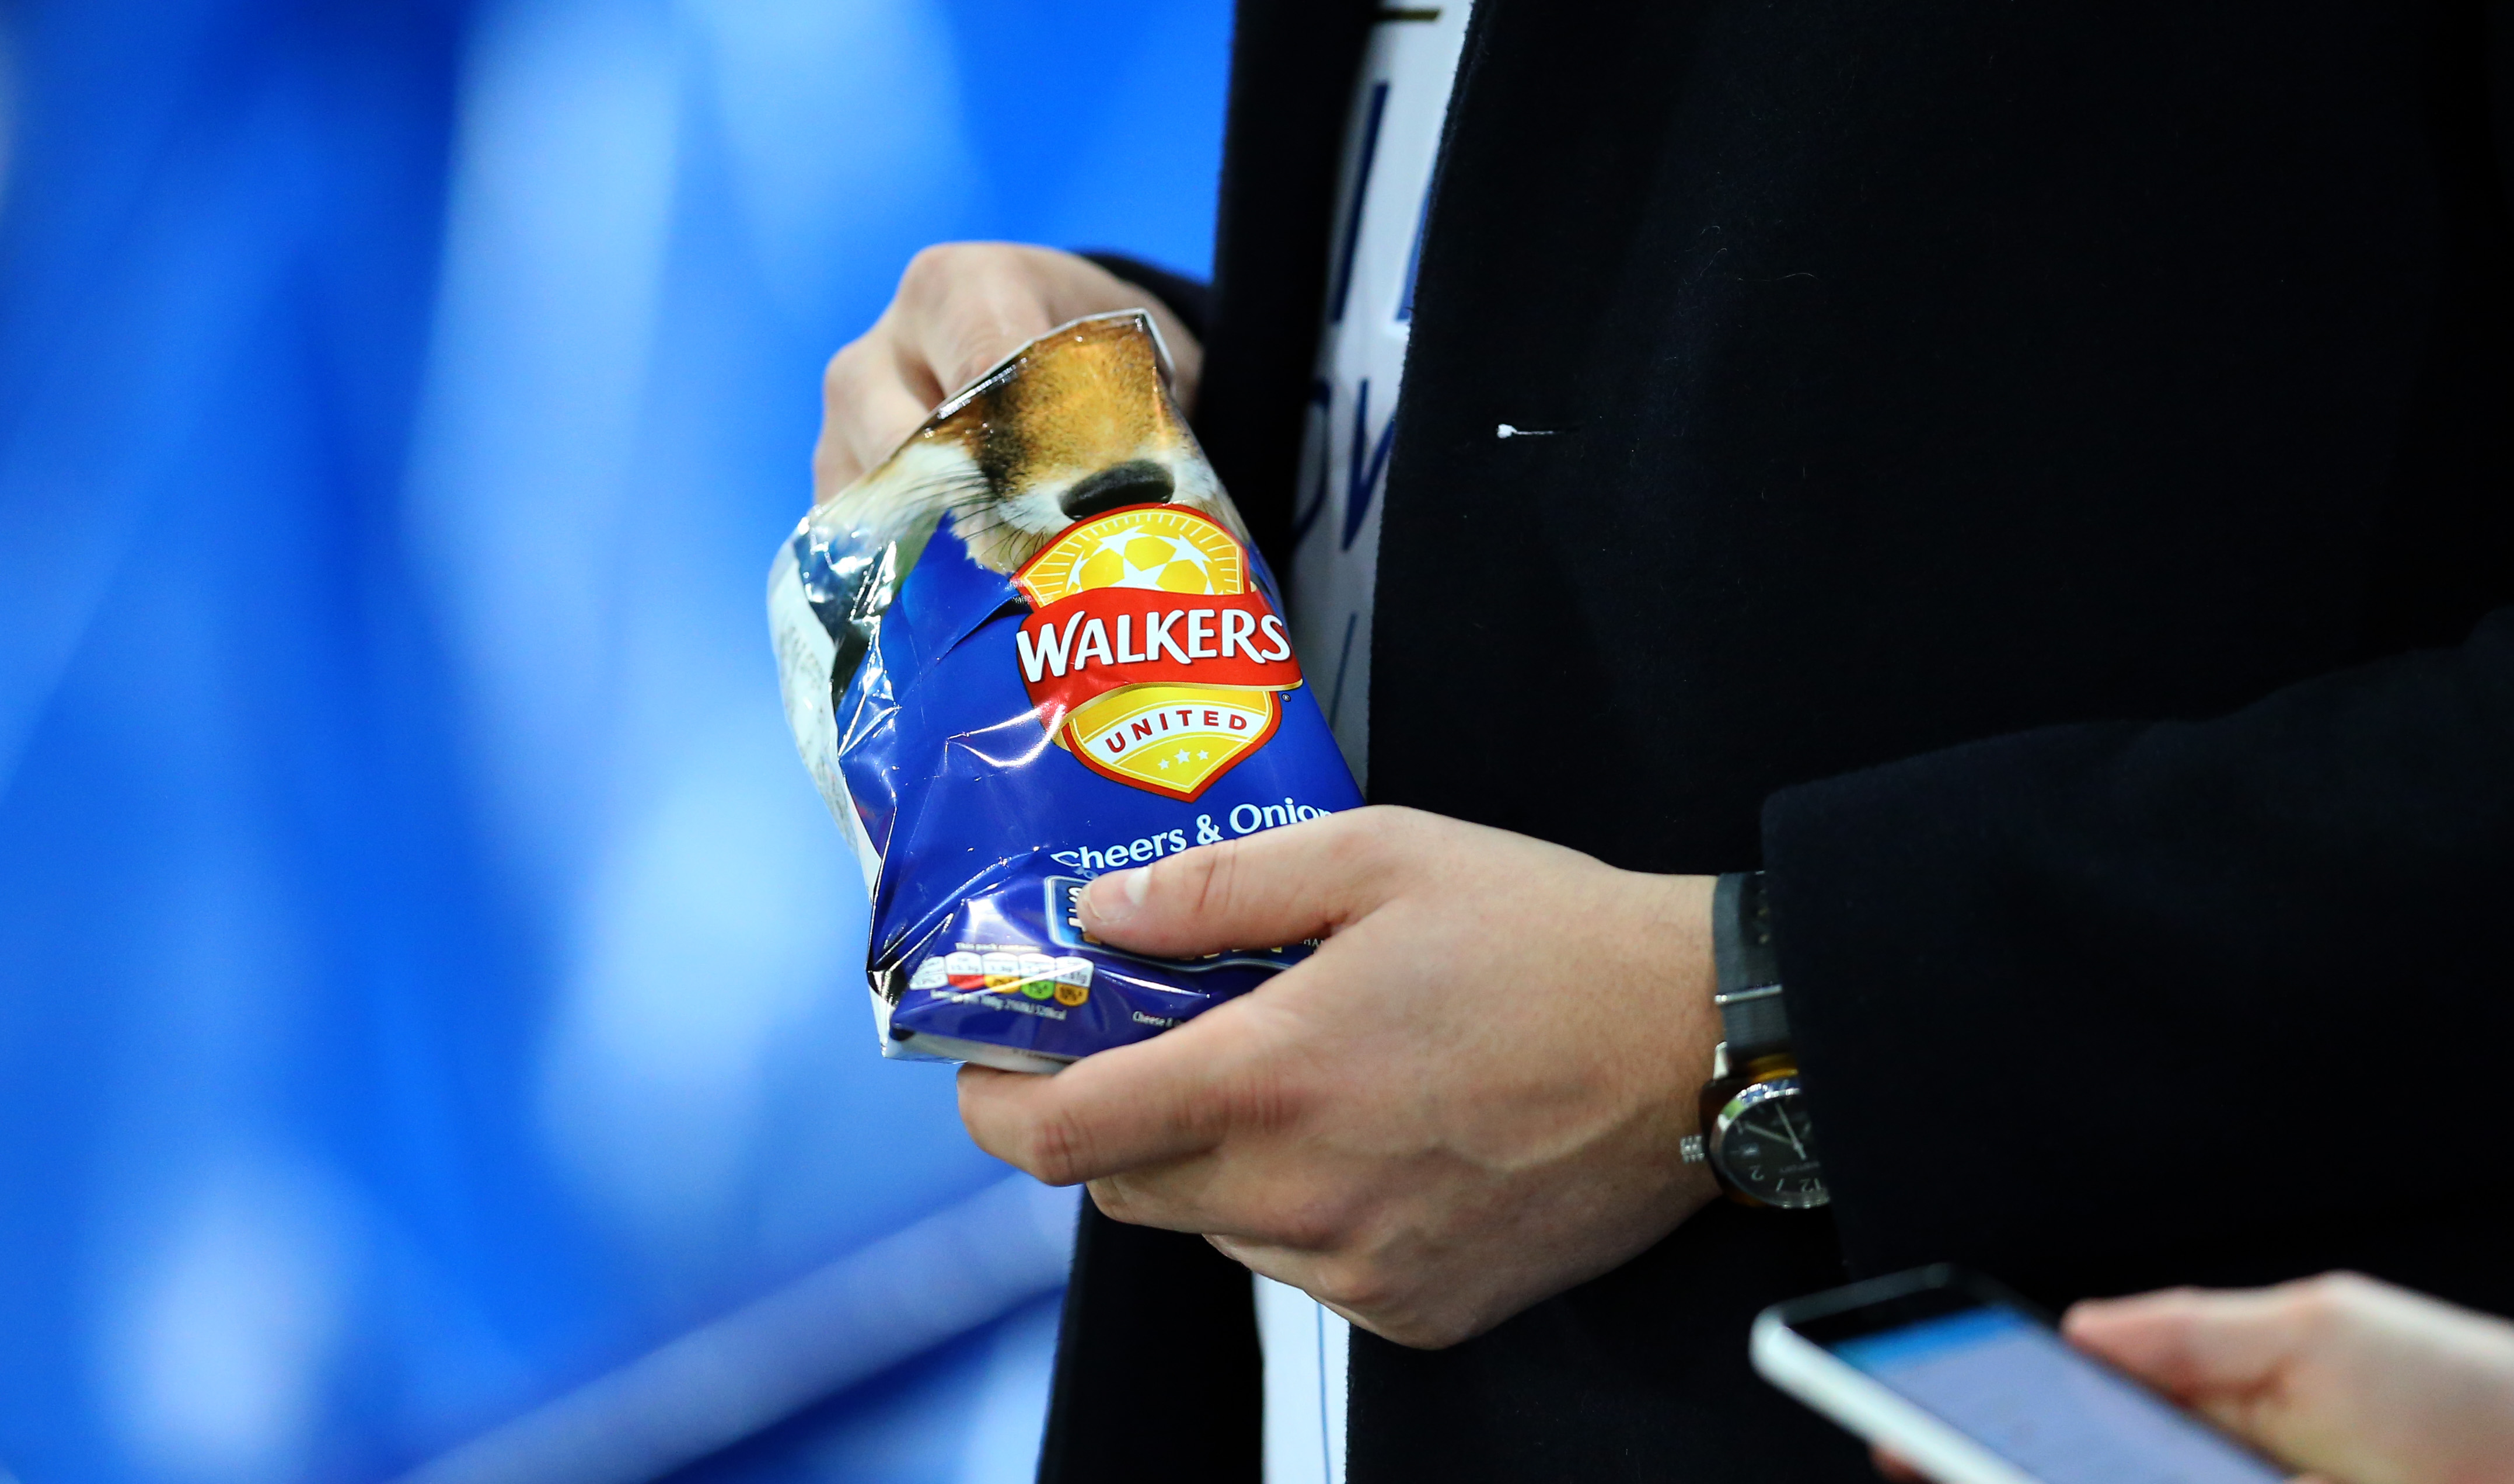 A Walkers packet of Cheers and Onion crisps during the UEFA Champions League Round of 16 second leg match between Leicester City and Sevilla FC at The King Power Stadium on March 14, 2017 in Leicester, United Kingdom.